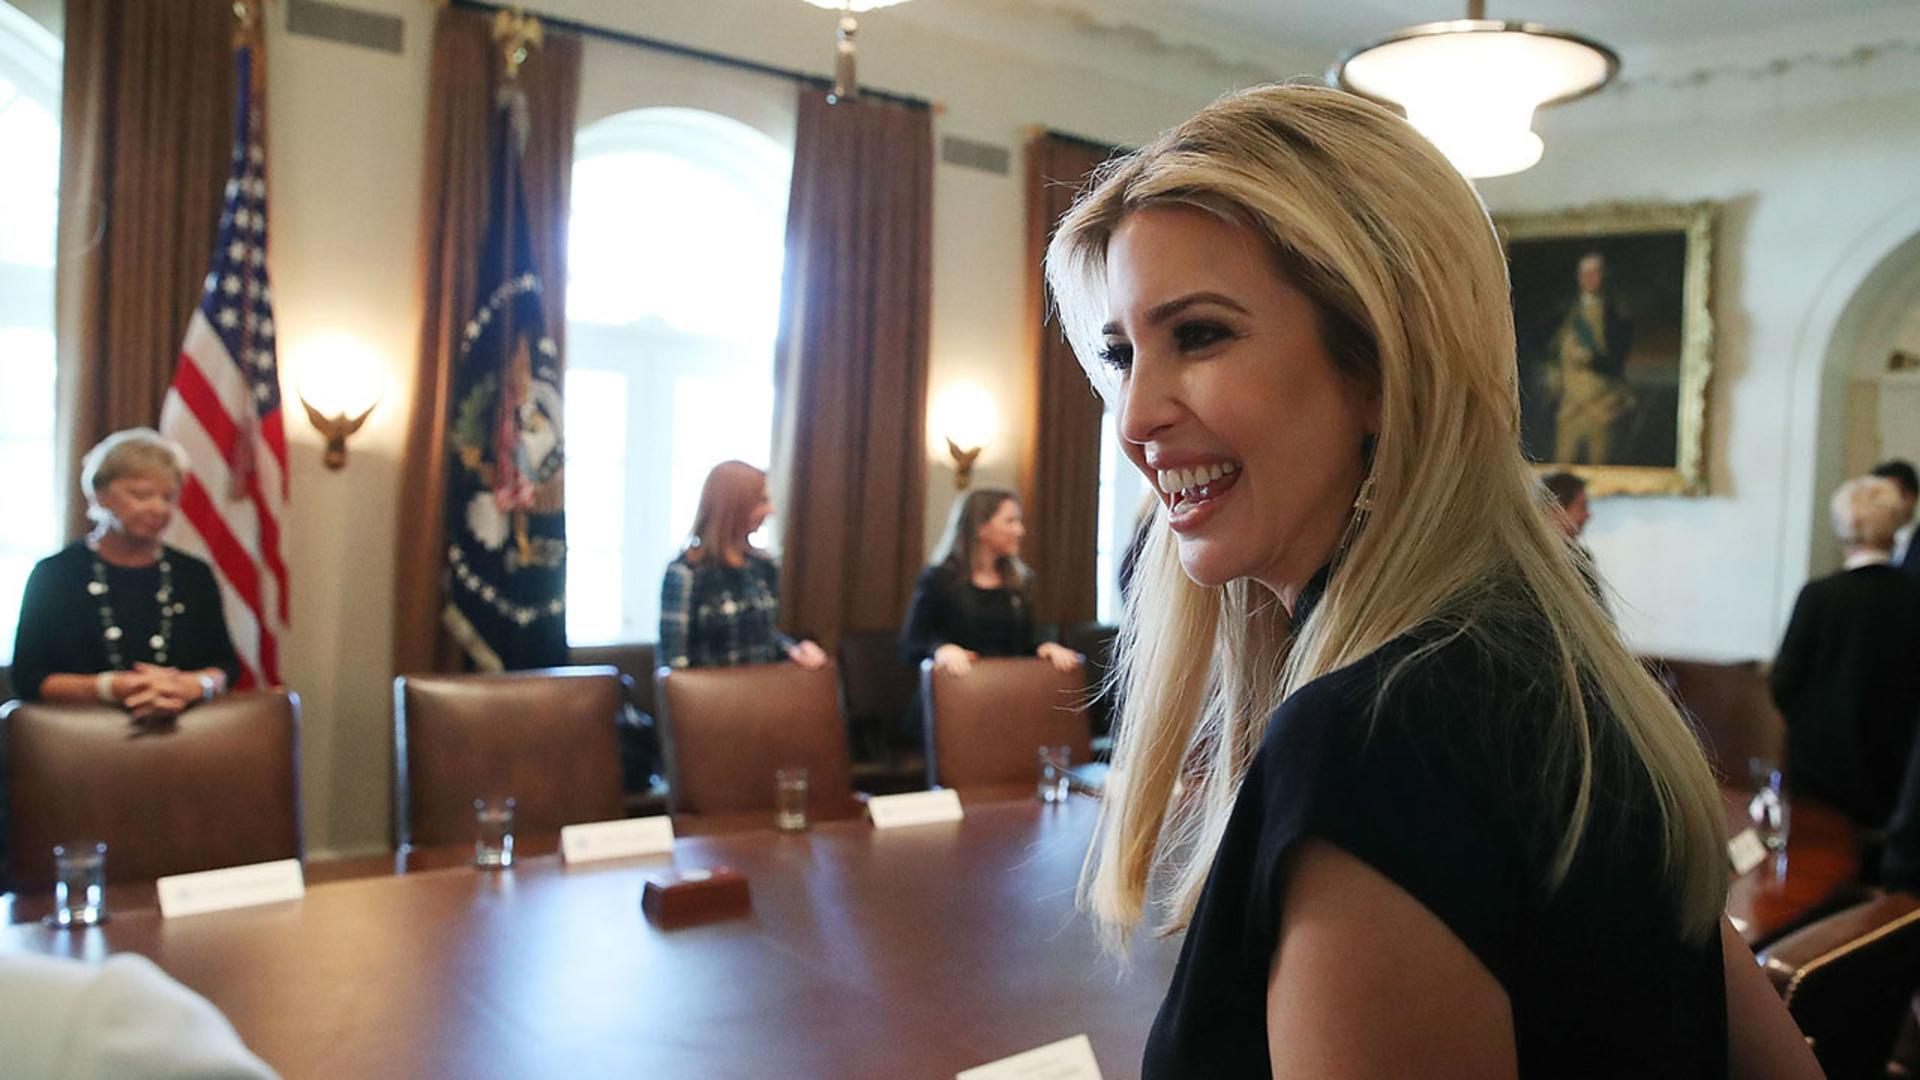 People Are Furious Over a Photo of Ivanka Trump Sitting In ...